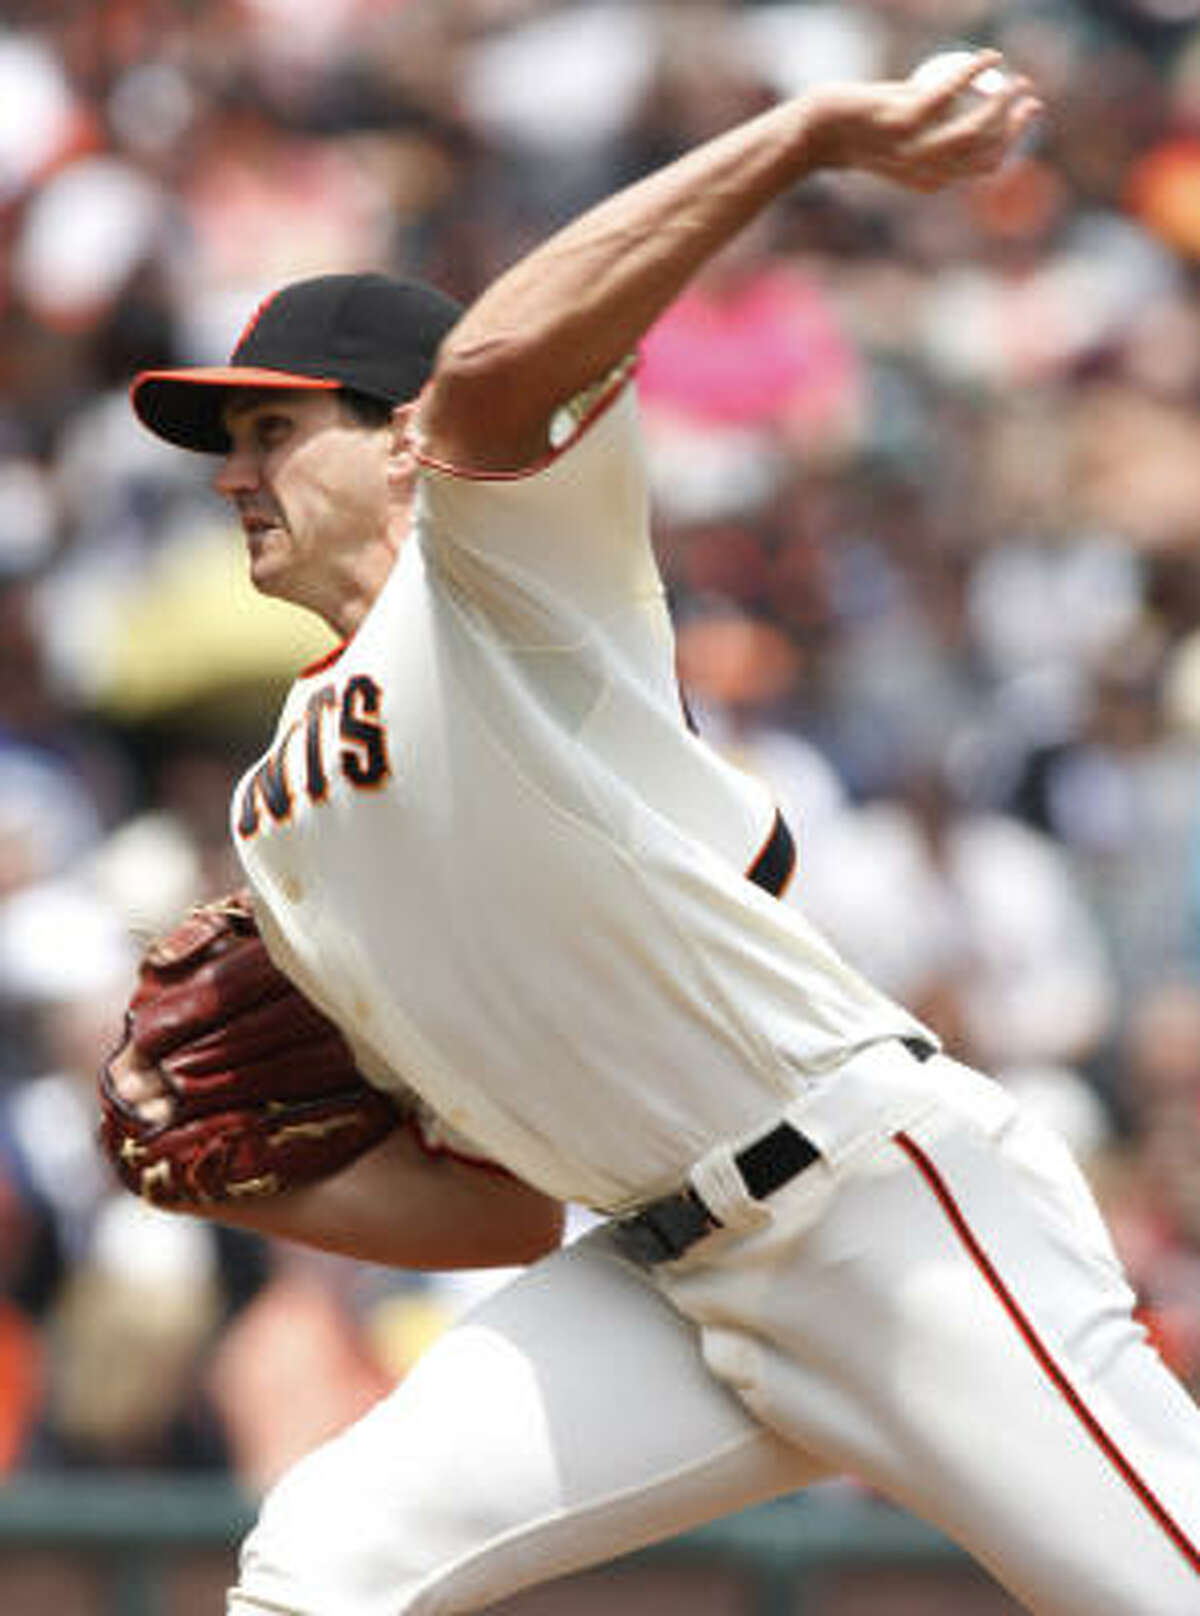 Giants starter Barry Zito picked up his sixth win of the season while pitching seven innings and giving up three runs.